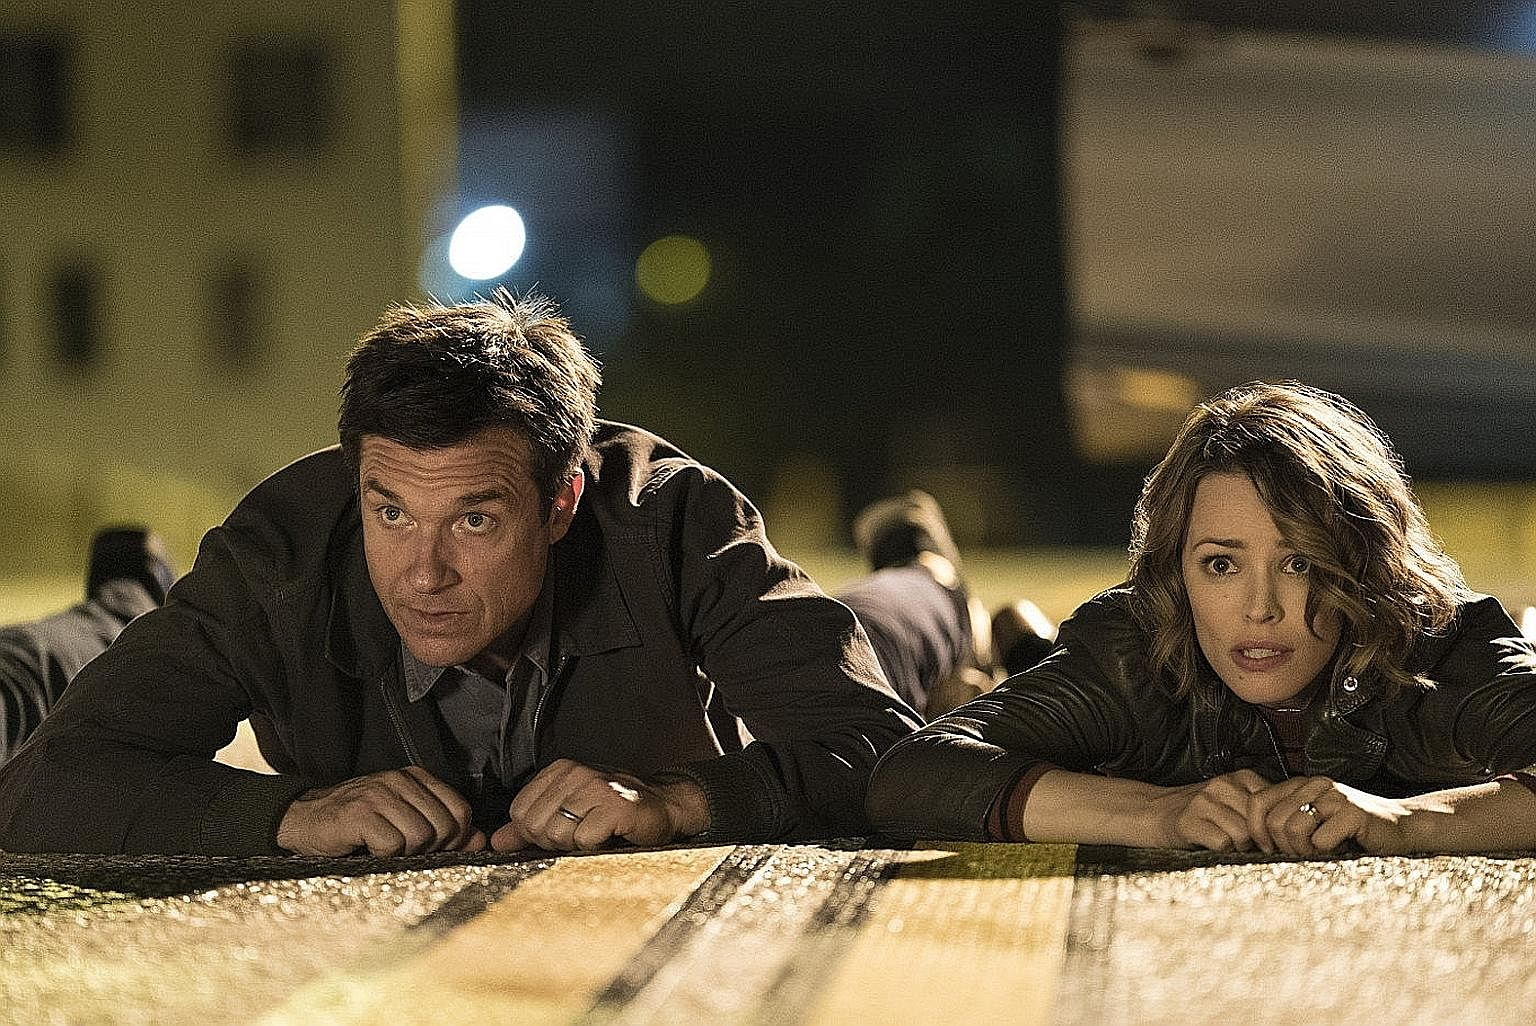 Jason Bateman and Rachel McAdams (both above) in Game Night. David Spade and Lauren Lapkus (both above) in The Wrong Missy. Ryu Seung-ryong in Extreme Job.